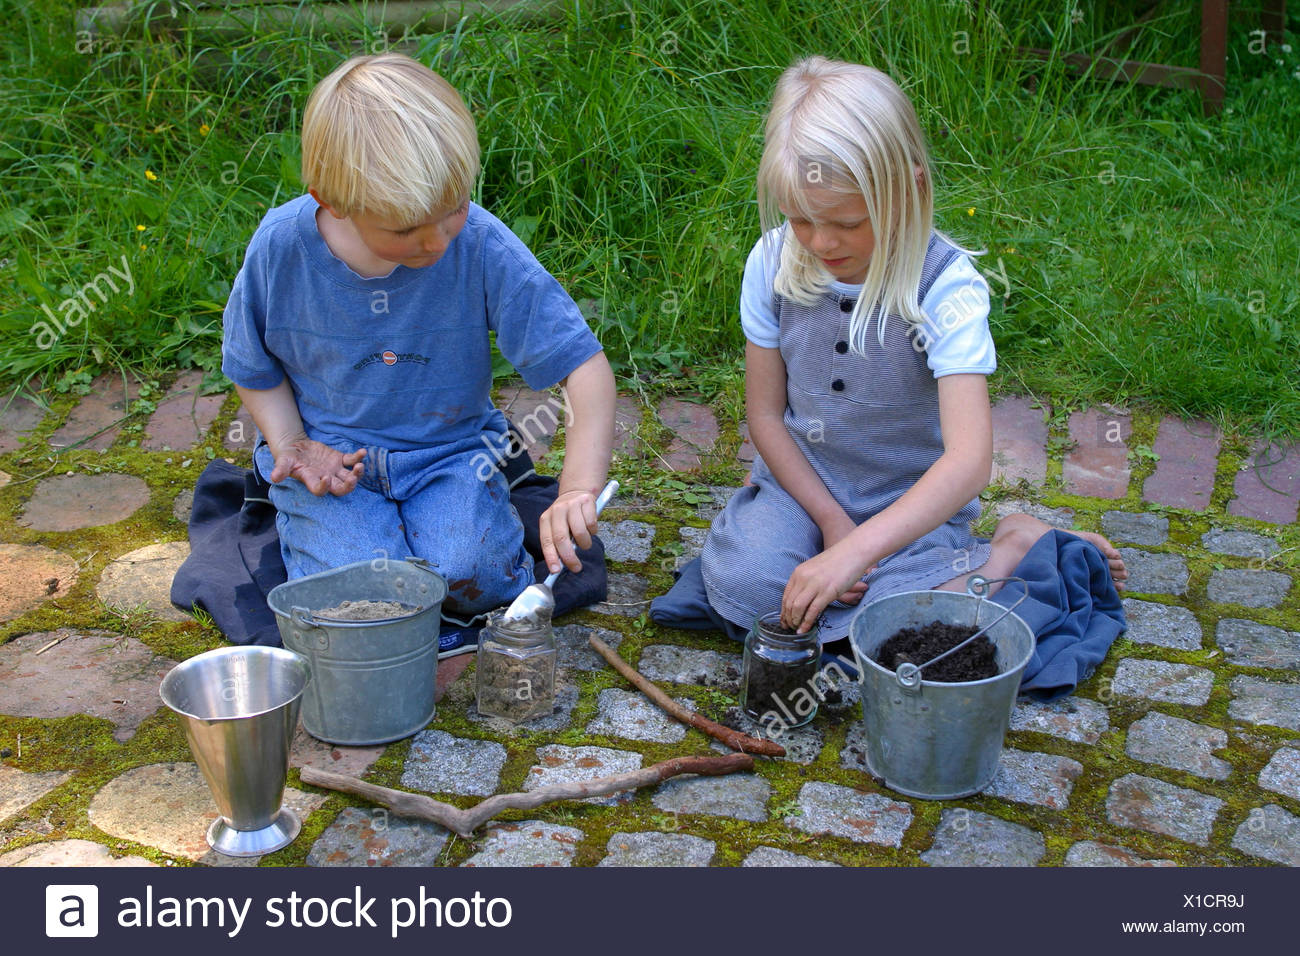 two children mixing soils to paint with earth colour, Germany - Stock Image